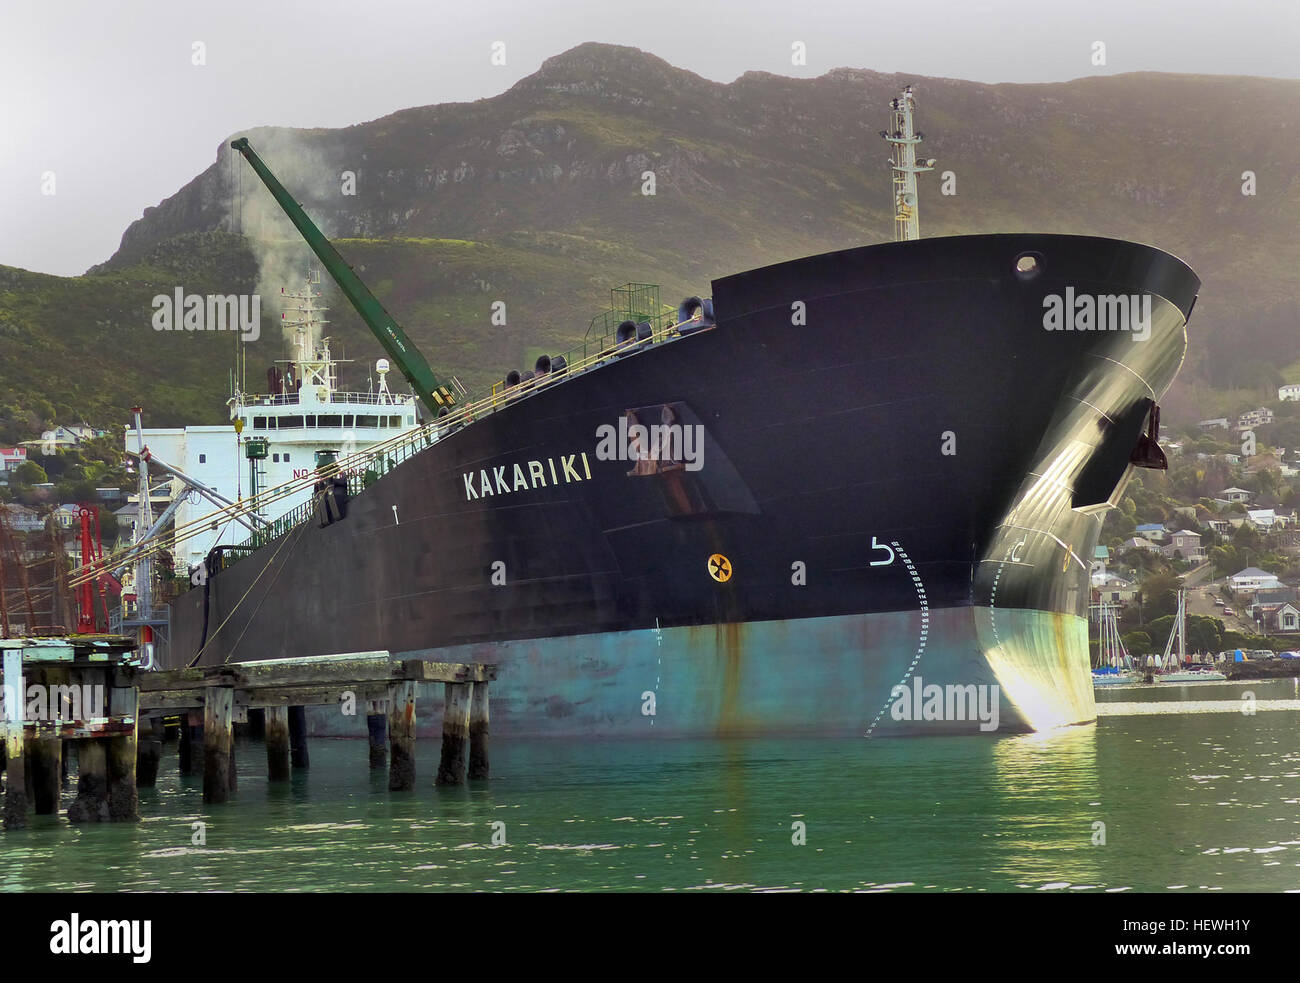 Vessel KAKARIKI (IMO: 9158305, MMSI: 512000050) is a crude oil tanker buit in 1999 and currently sailing under the - Stock Image